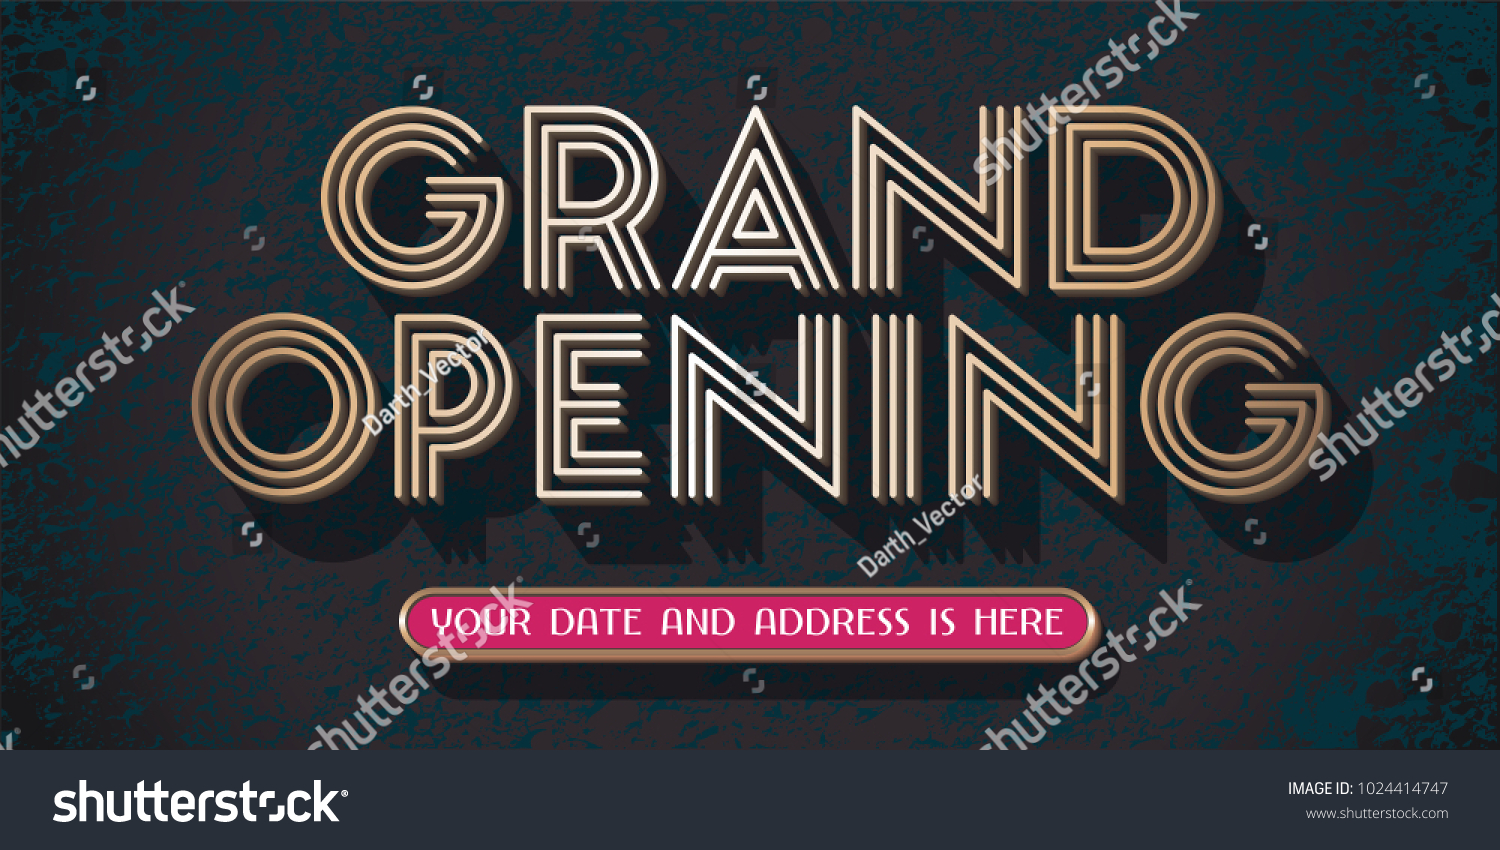 Grand Opening Vector Banner Illustration Template Stock Vector (2018 ...